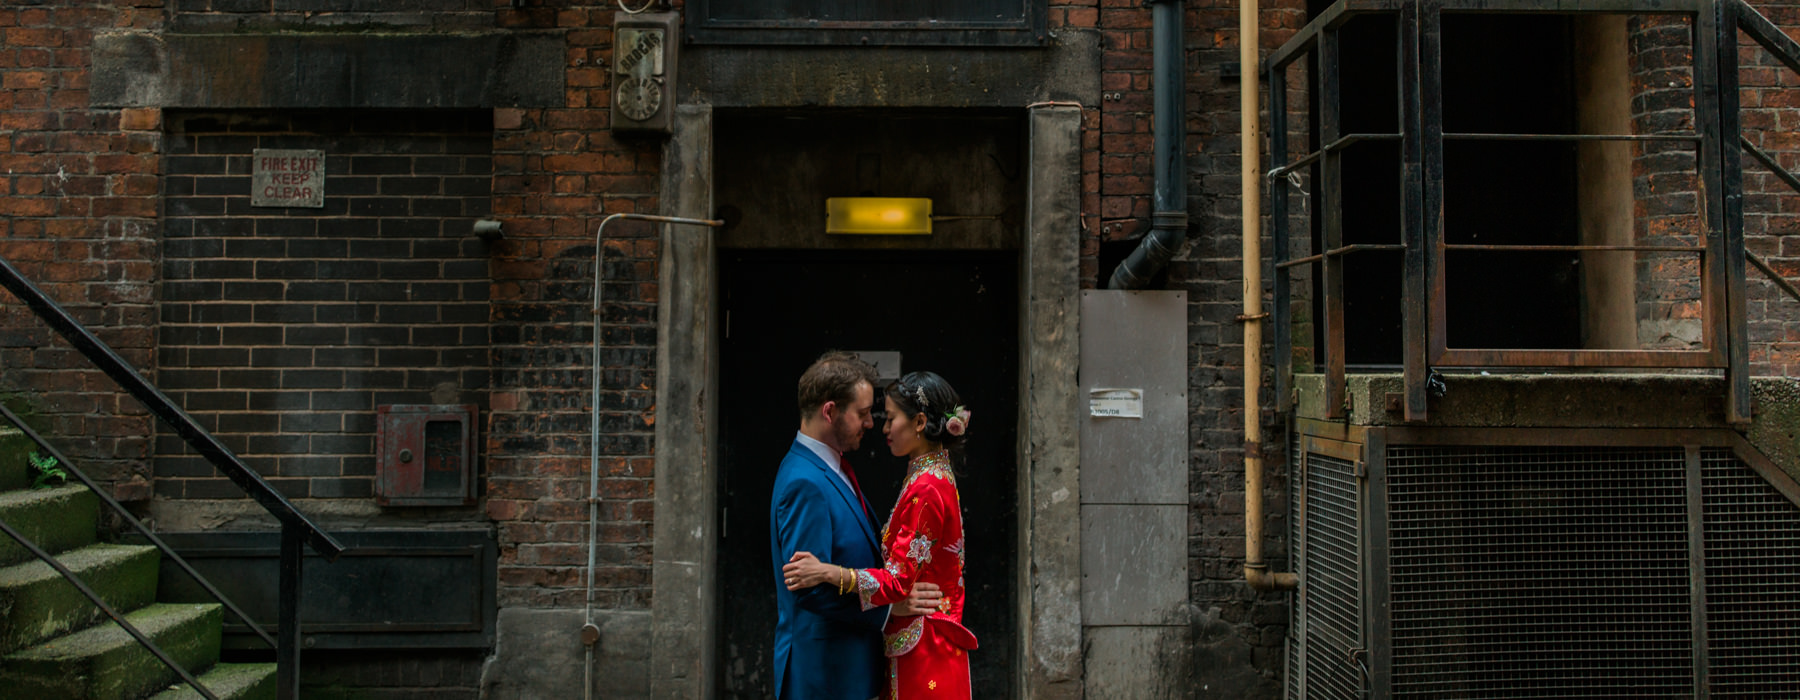 Manchester Wedding Photographer, Manchester Town Hall, China Town Wedding - Cahill Photography